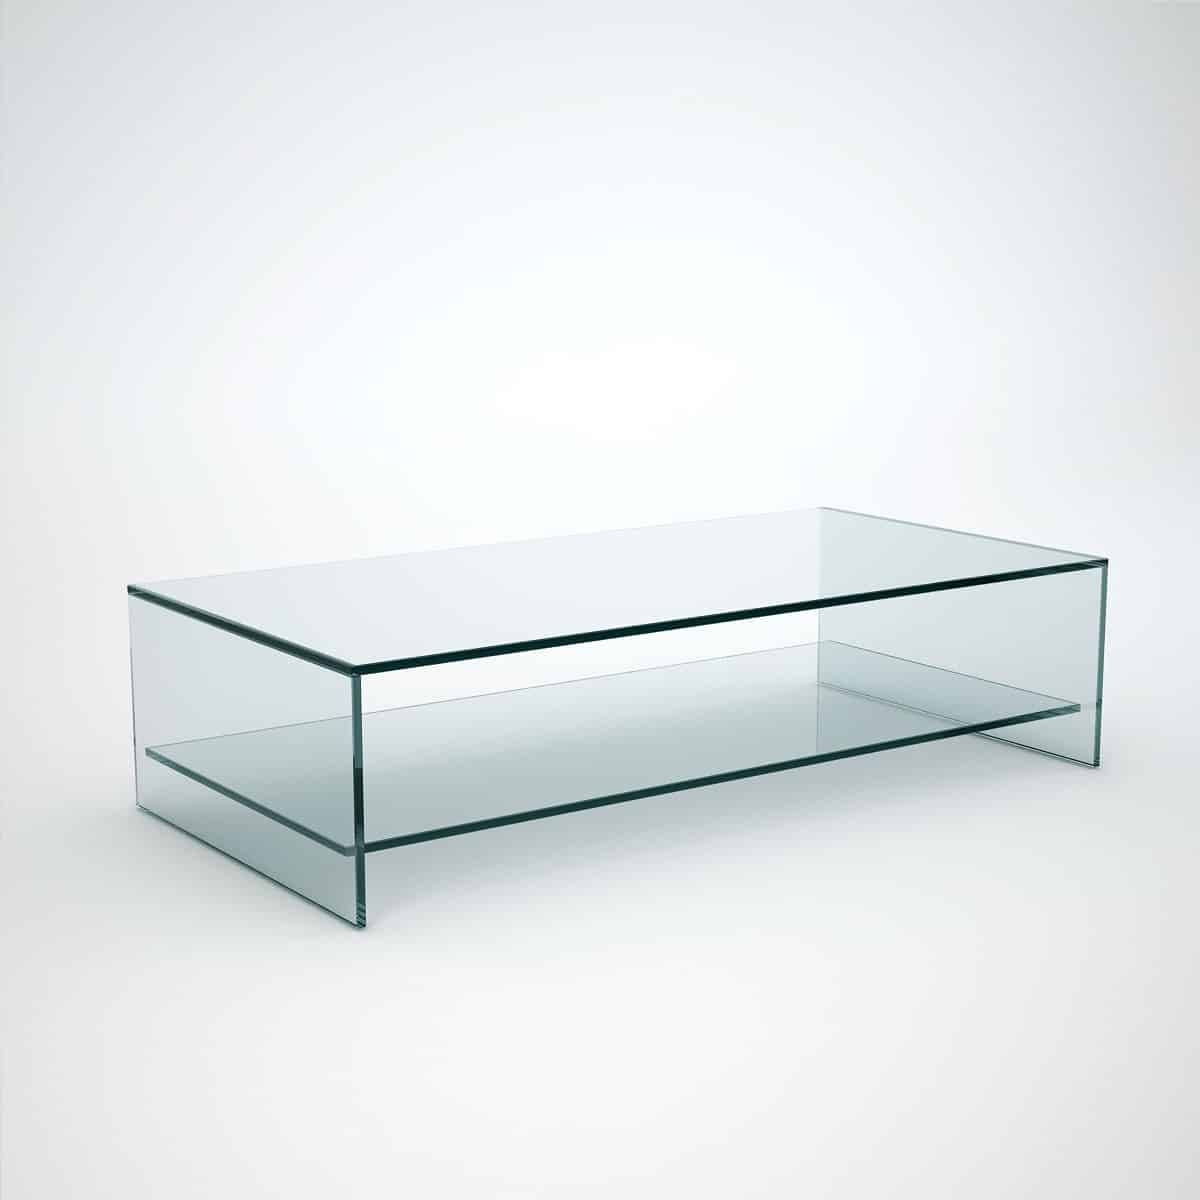 Emerson Rectangular Mod Swivel Coffee Table W Glass: 15 Collection Of Glass Coffee Table With Shelf